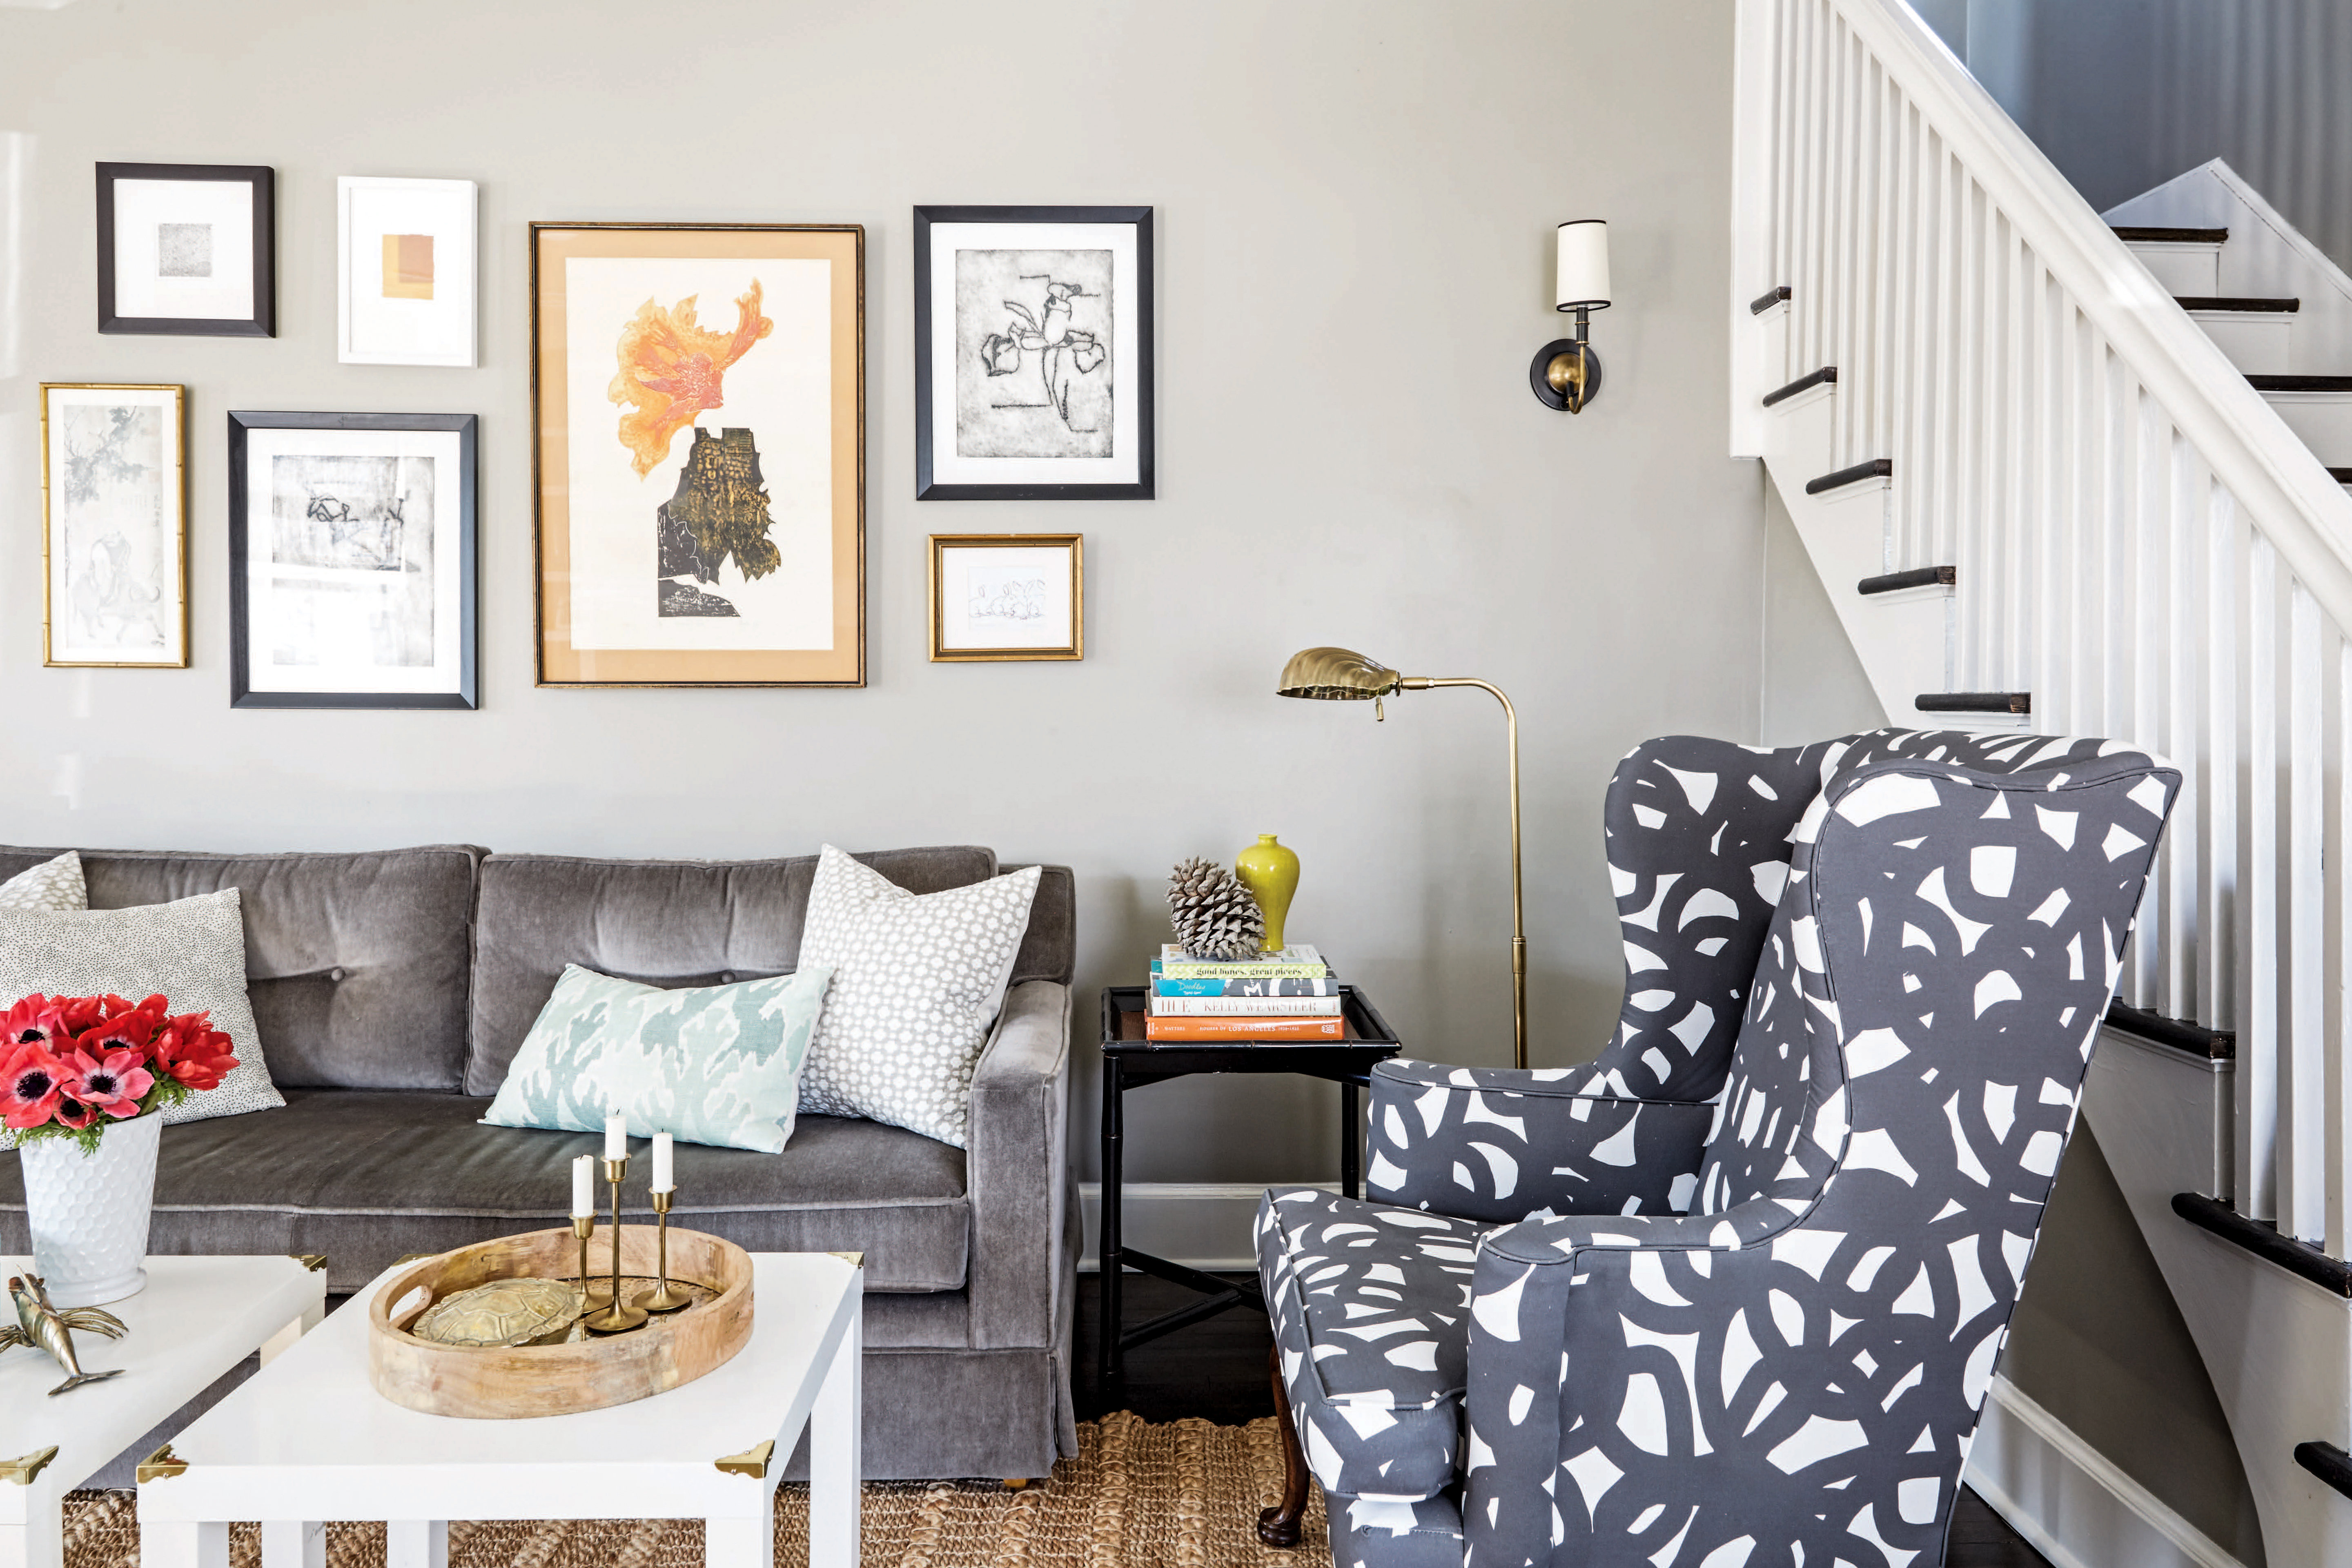 apartment therapy's maxwell ryan's 8 tips to love your home